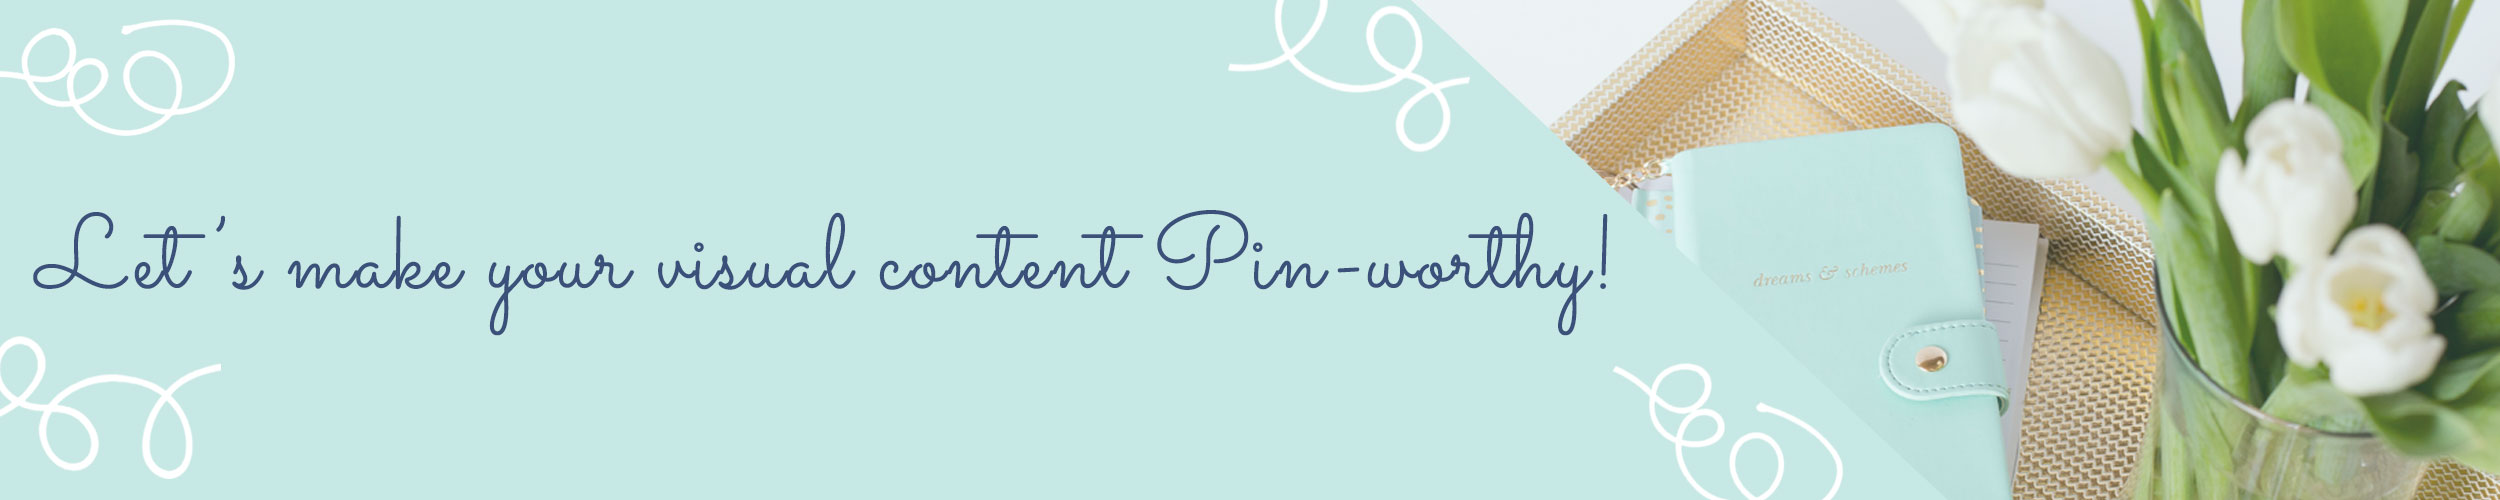 Custom Designed Pinterest Graphics - Untangled